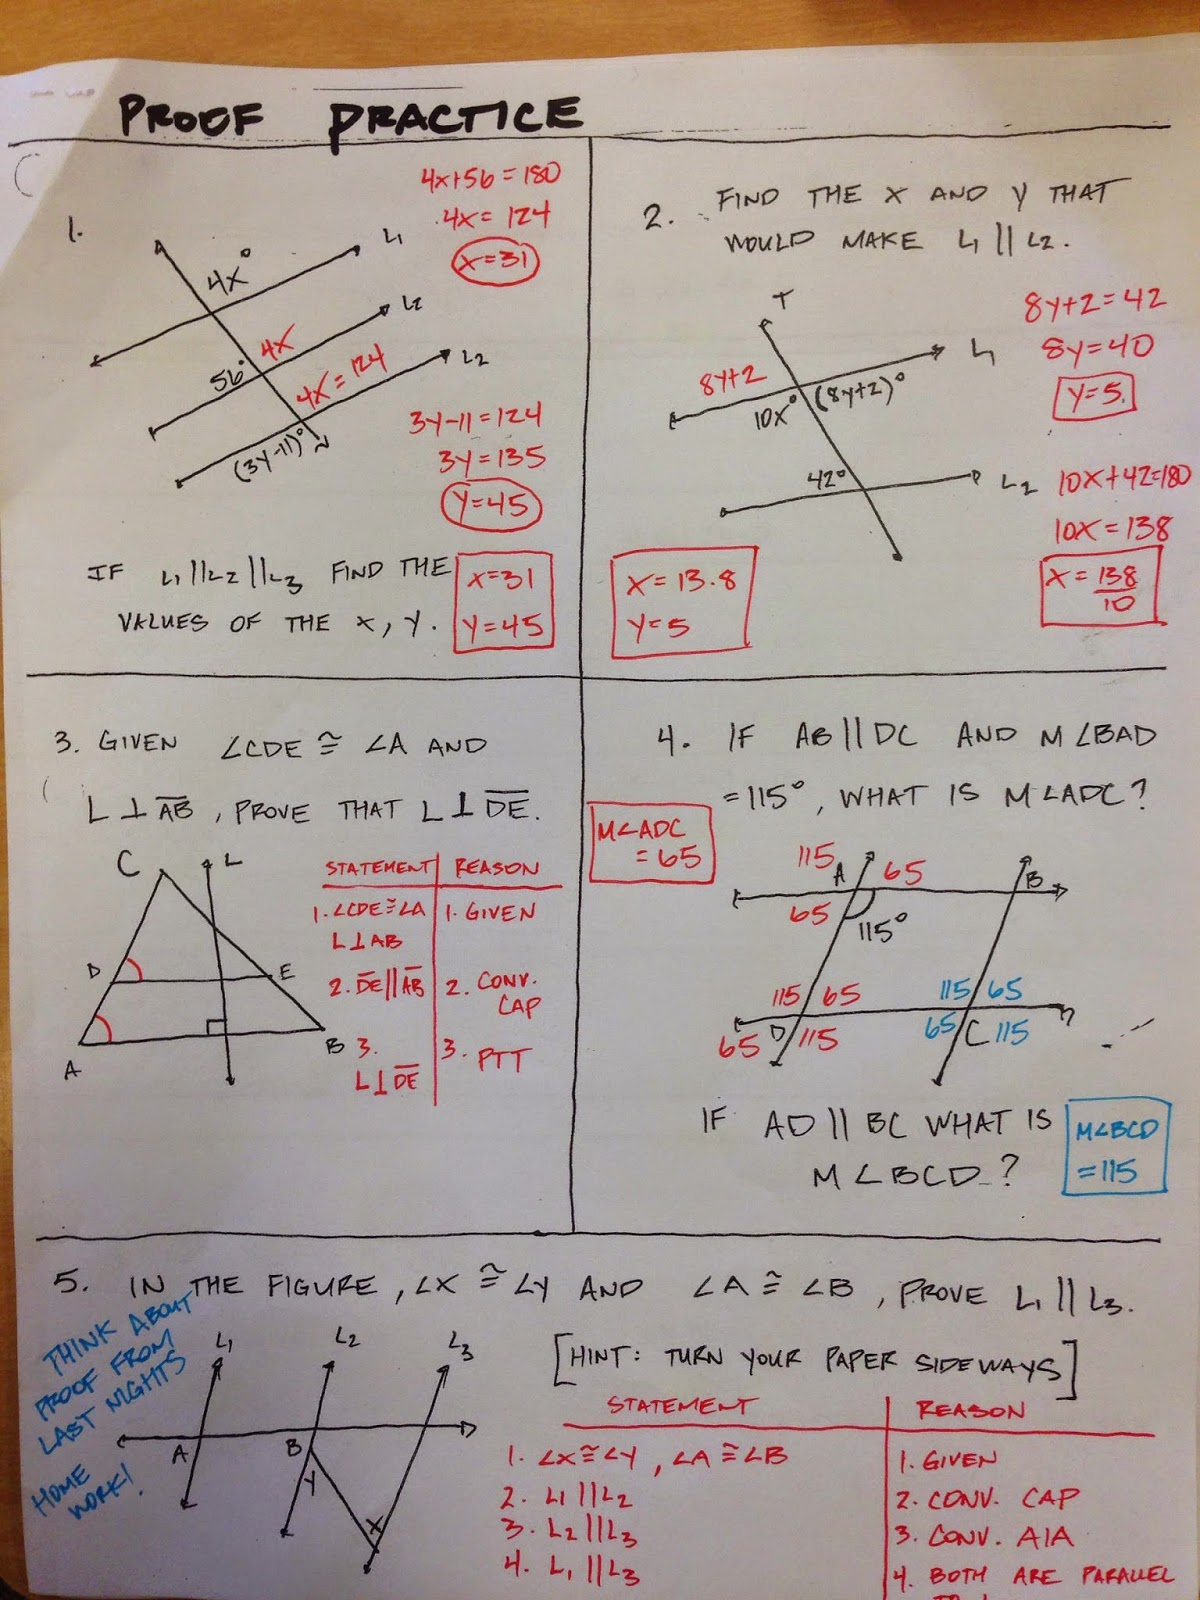 Study Guide 3 Honors Geometry Vintage High School Chapter 3 Proof Practice